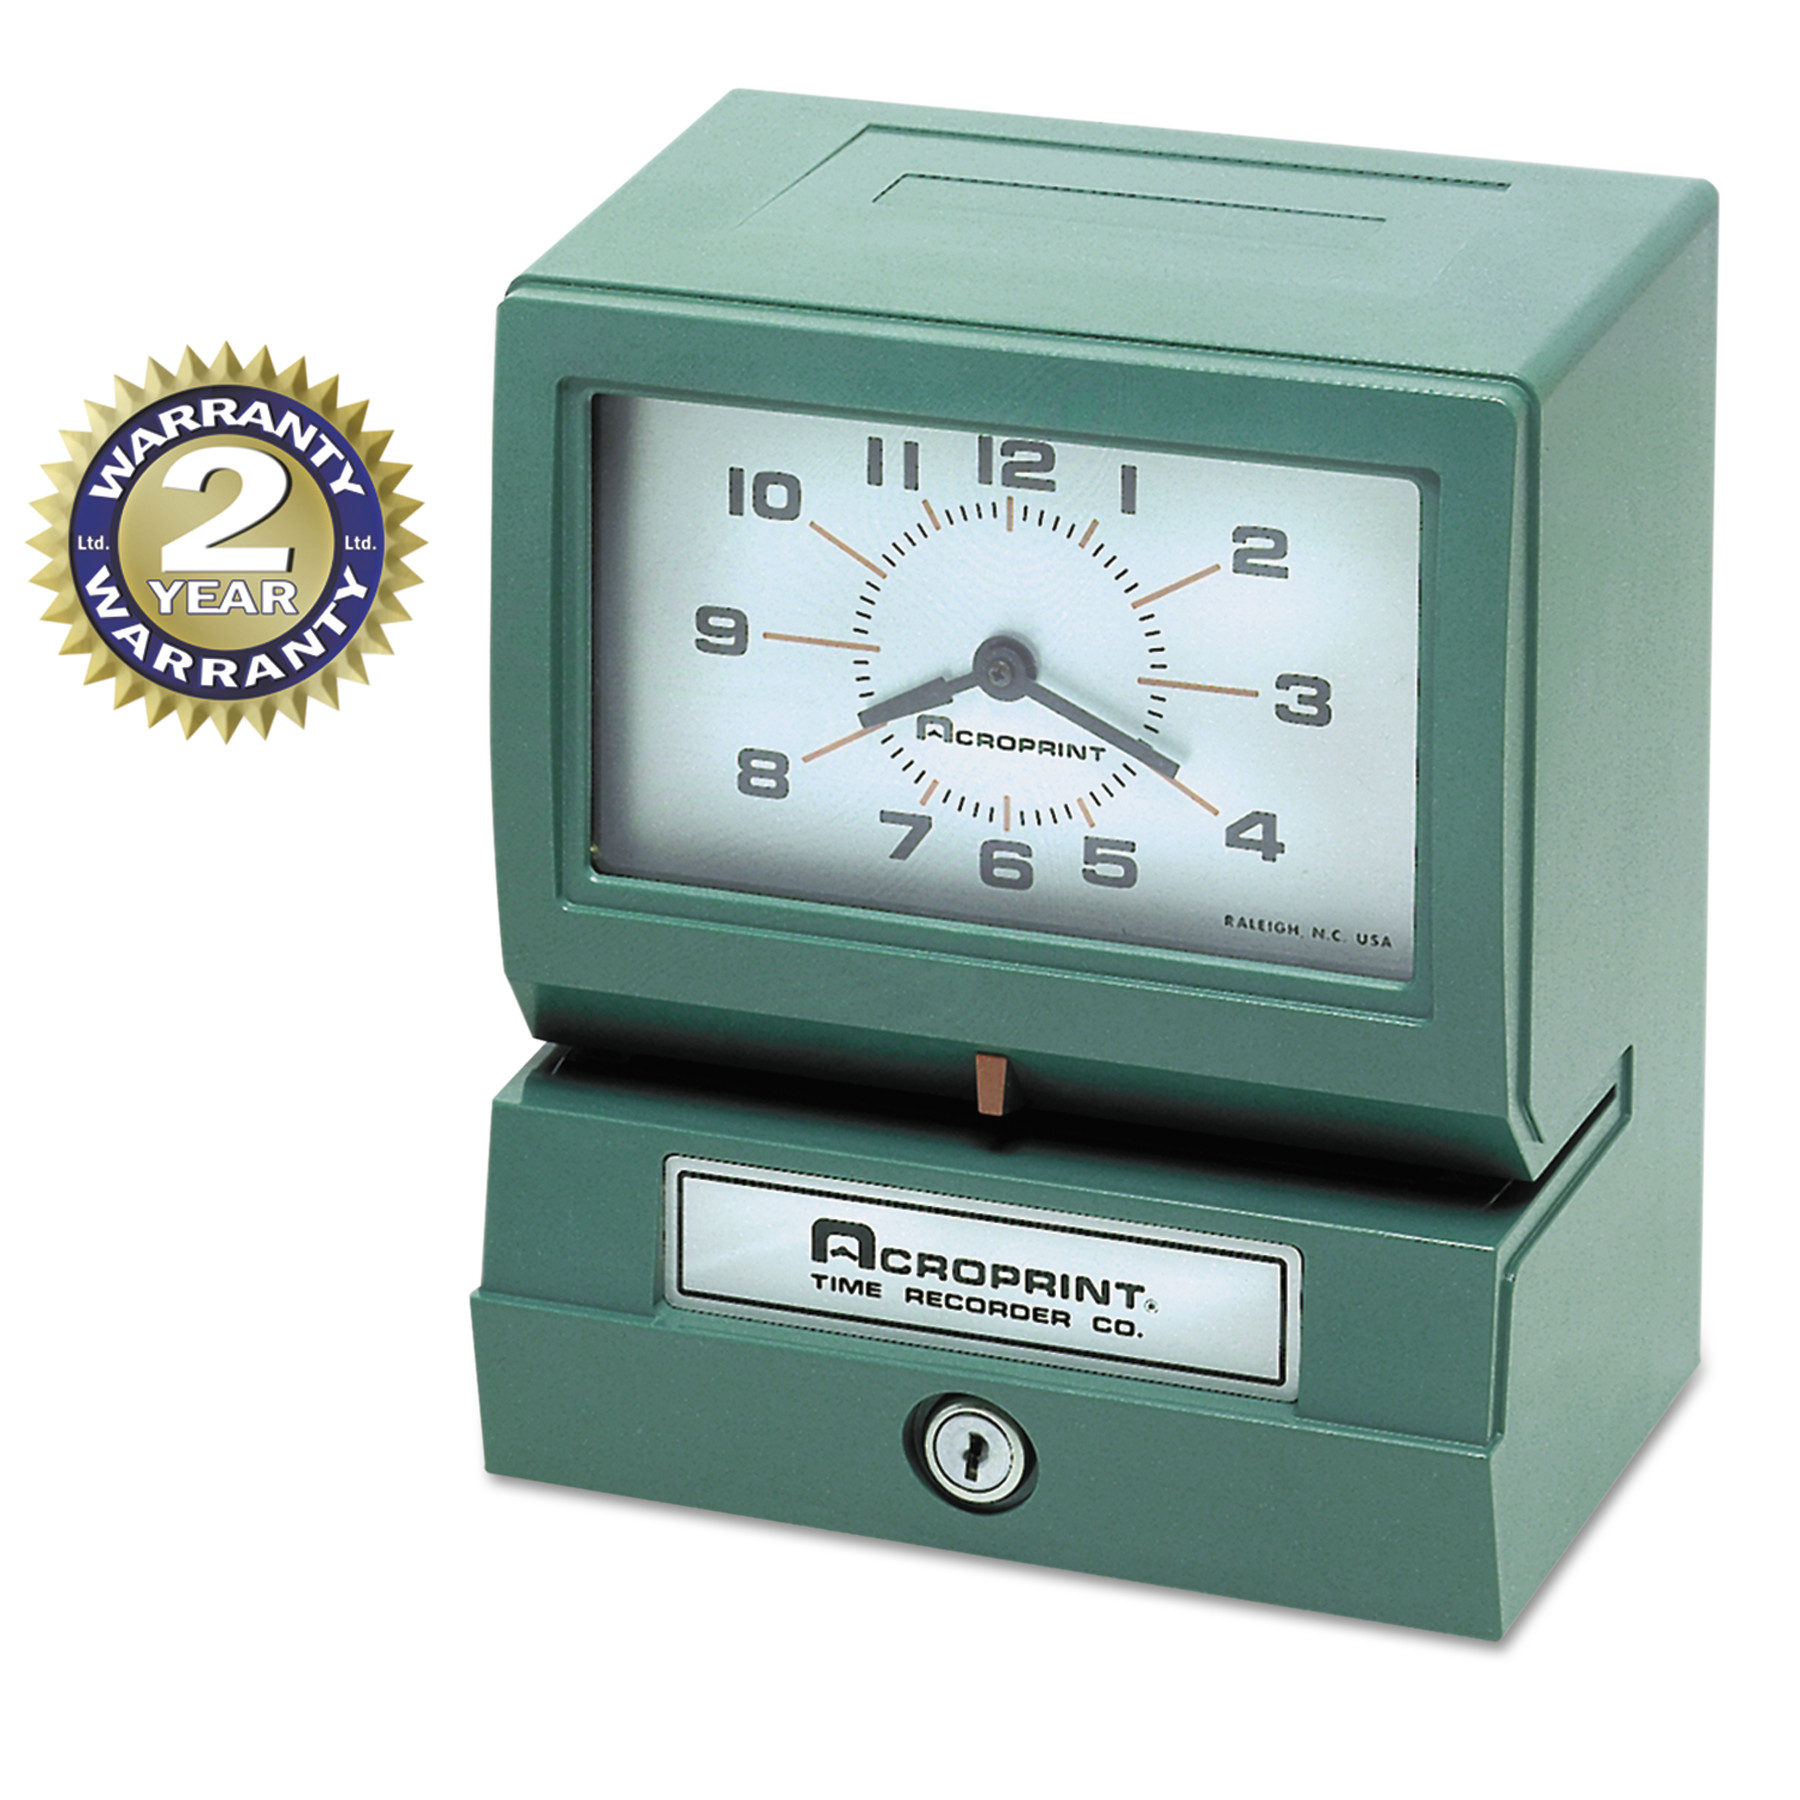 Acroprint Model 150 Analog Automatic Print Time Clock with Month/Date/0-23 Hours/Minutes -ACP012070413